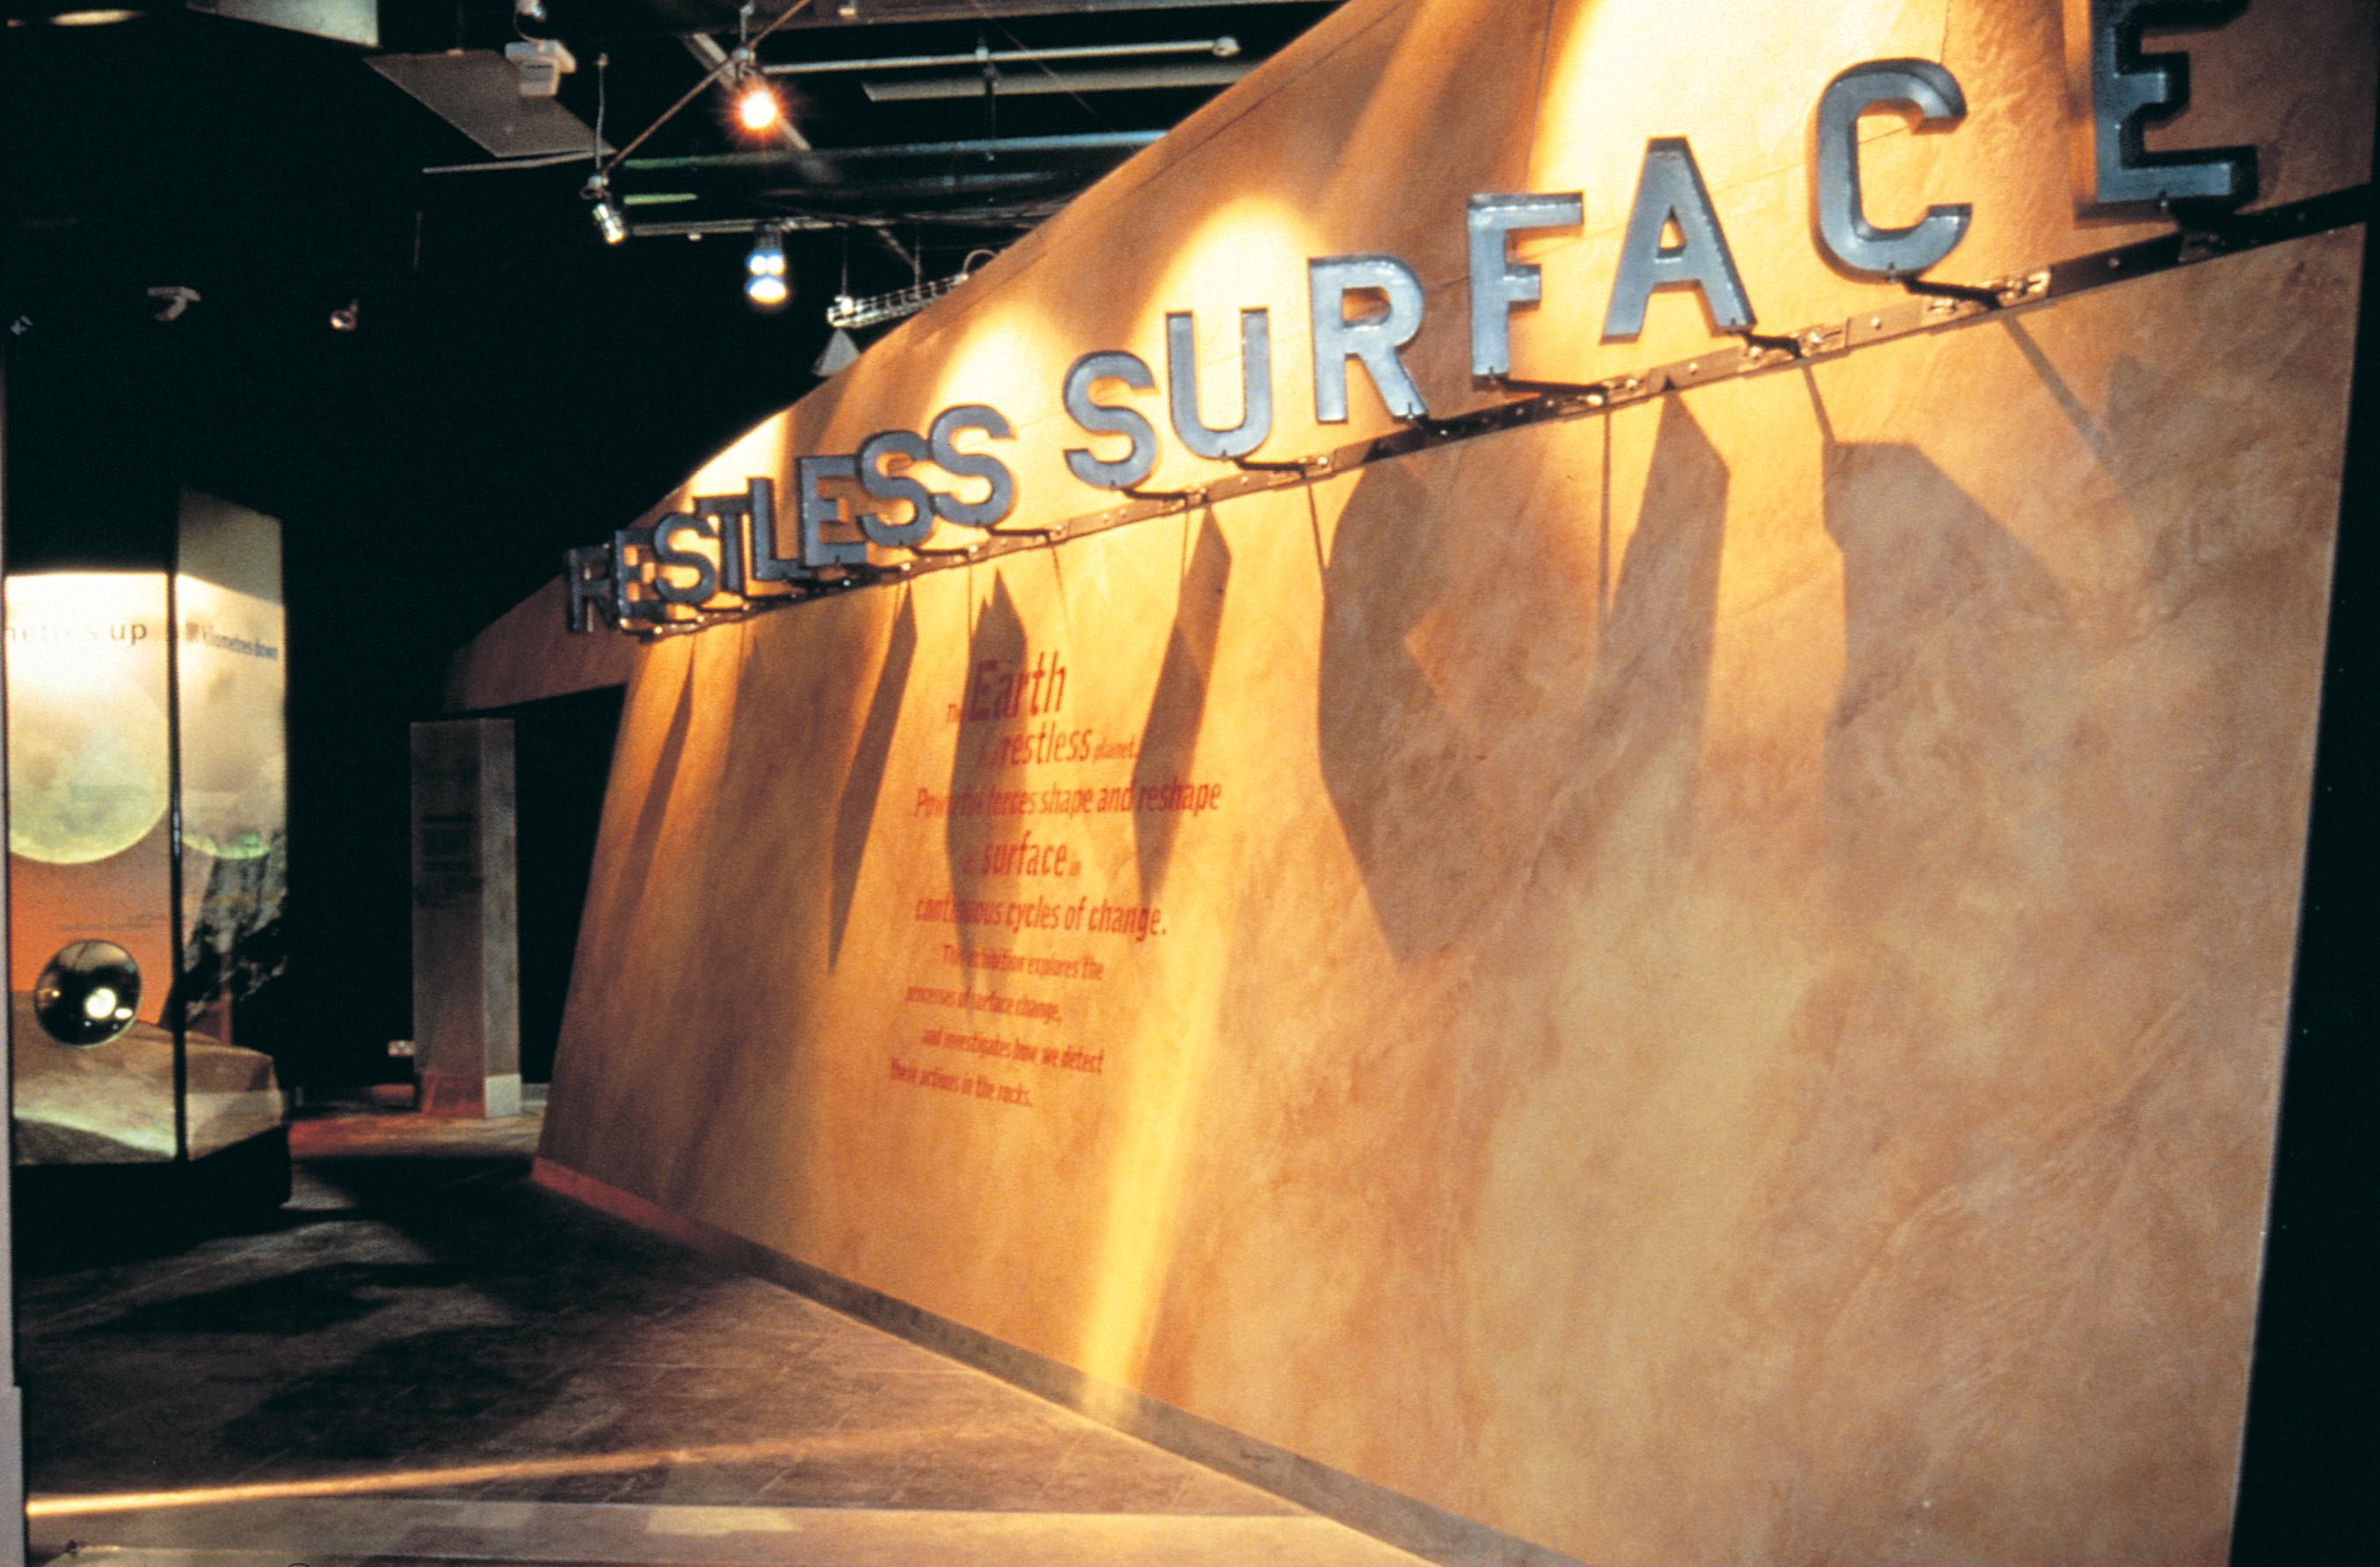 Restless Surface - National History Museum